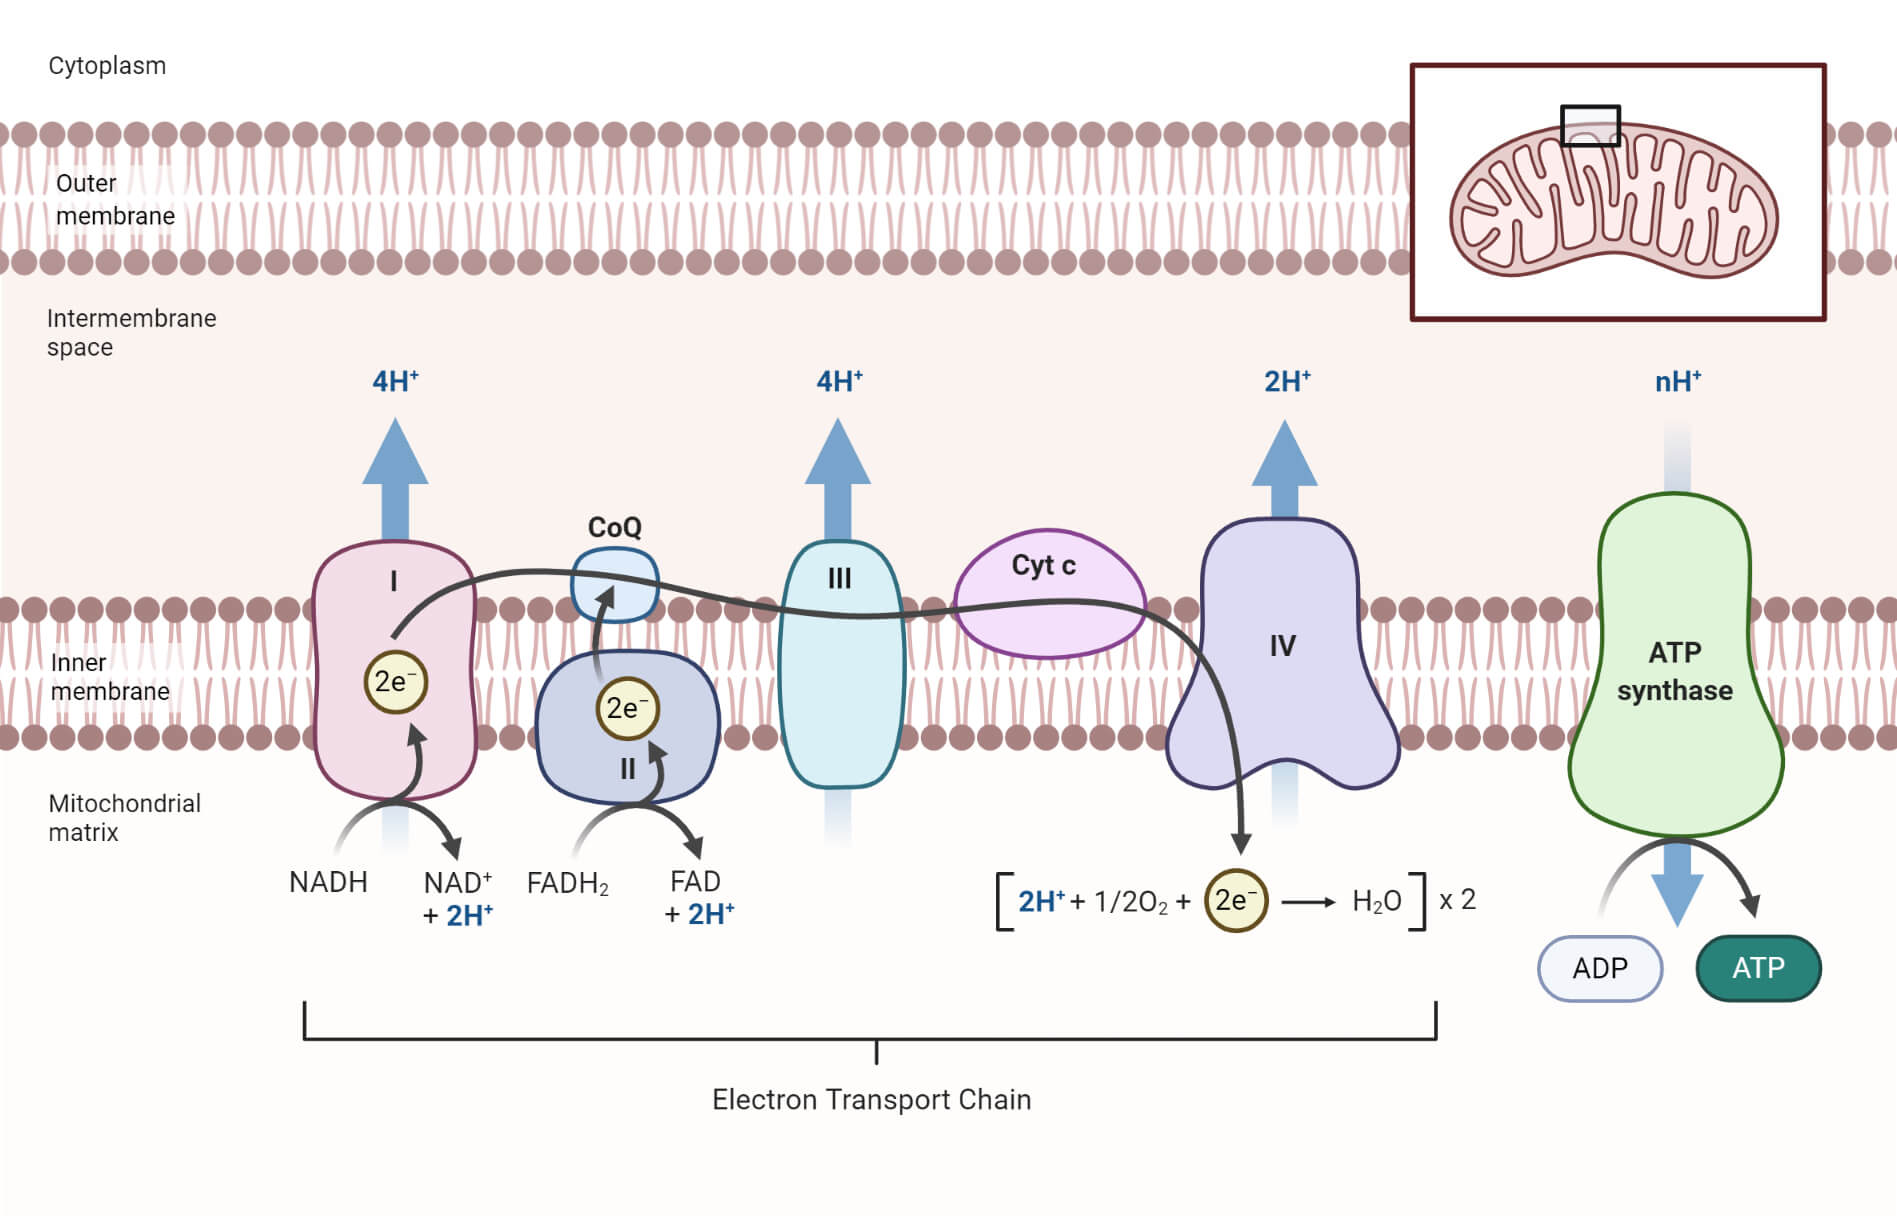 Electron Transport Chain (ETC)